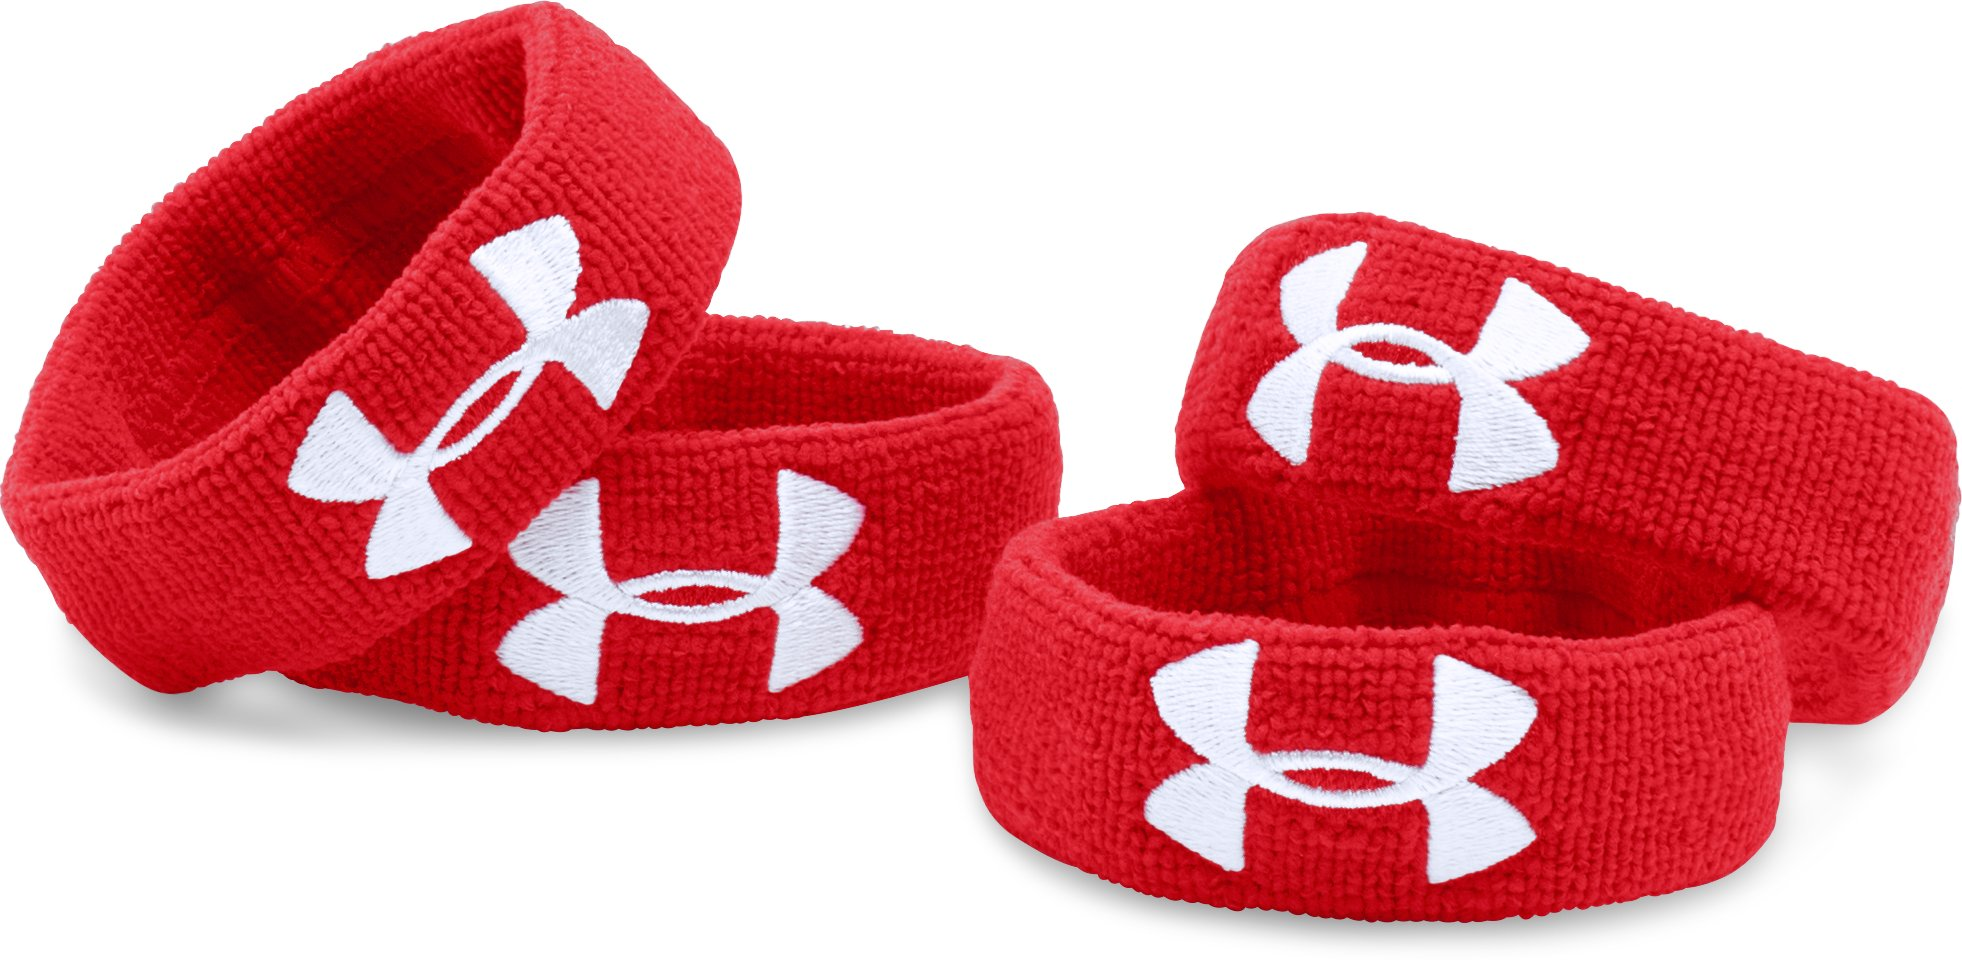 "UA 1"" Performance Wristband 4-Pack, Red"